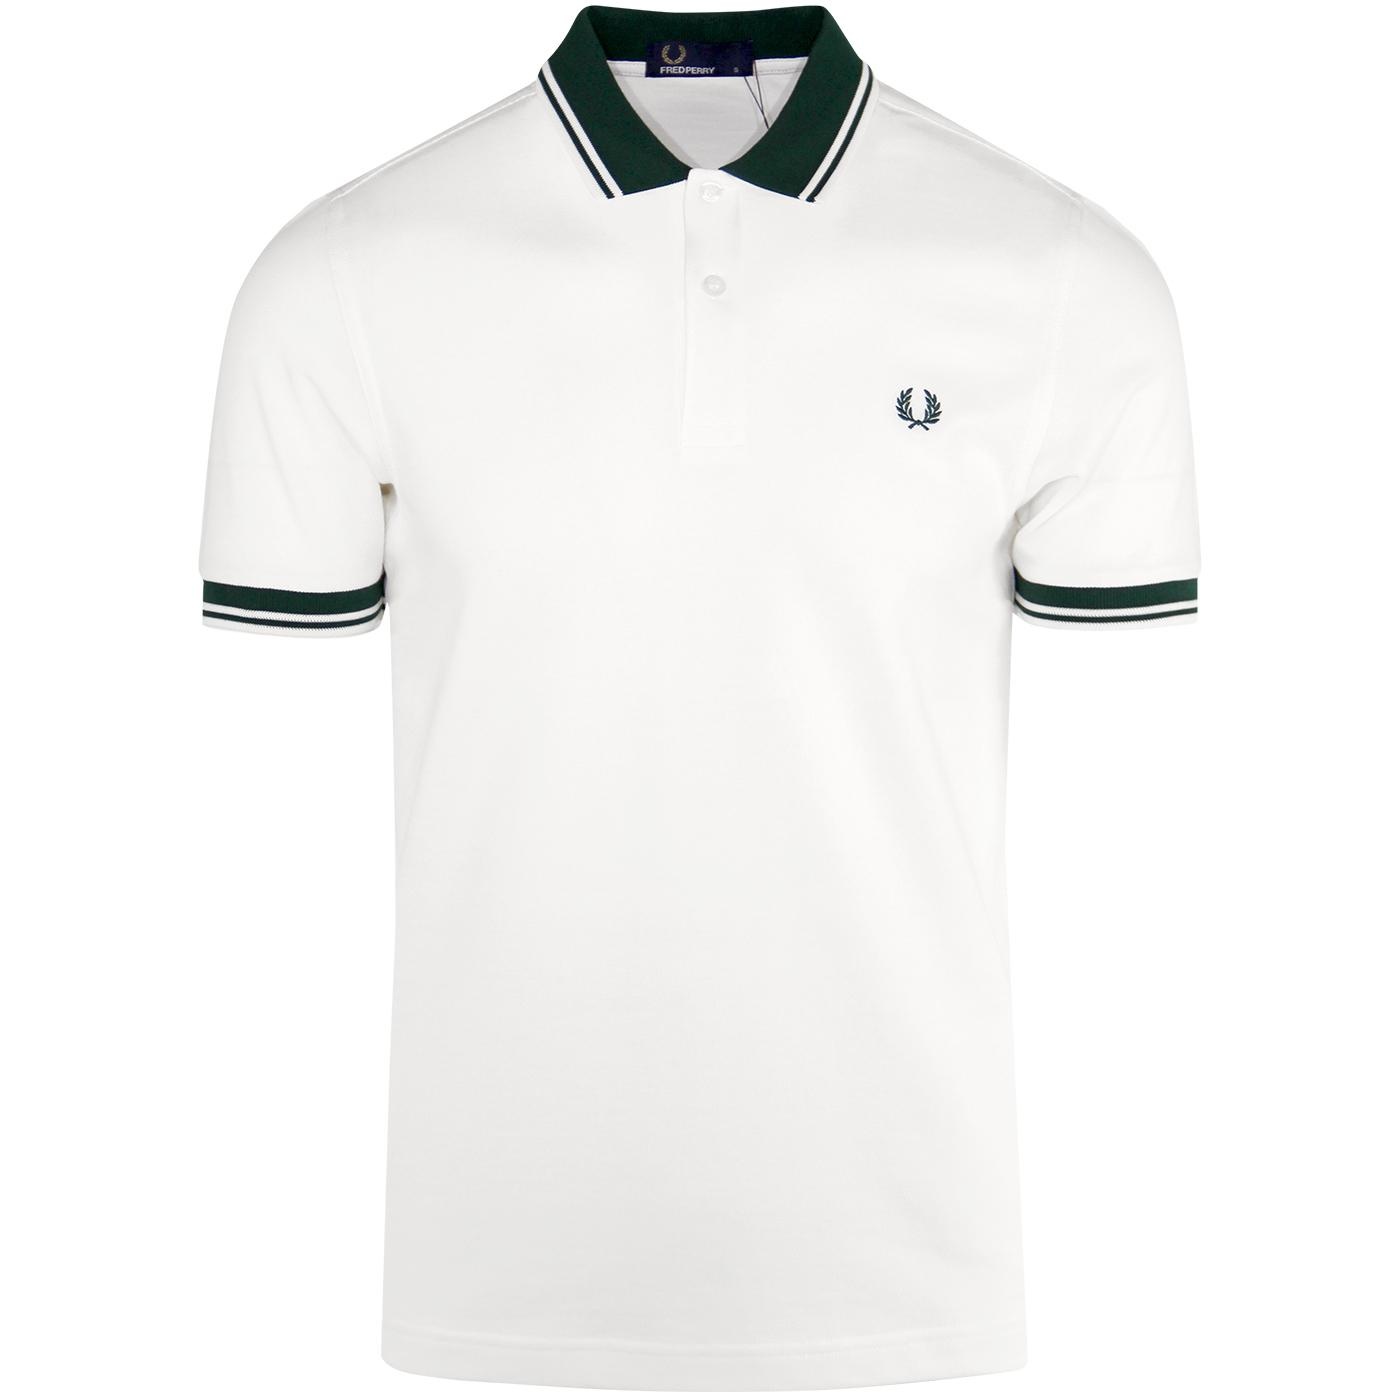 FRED PERRY Mod Twin Tipped Contrast Trim Polo (SW)